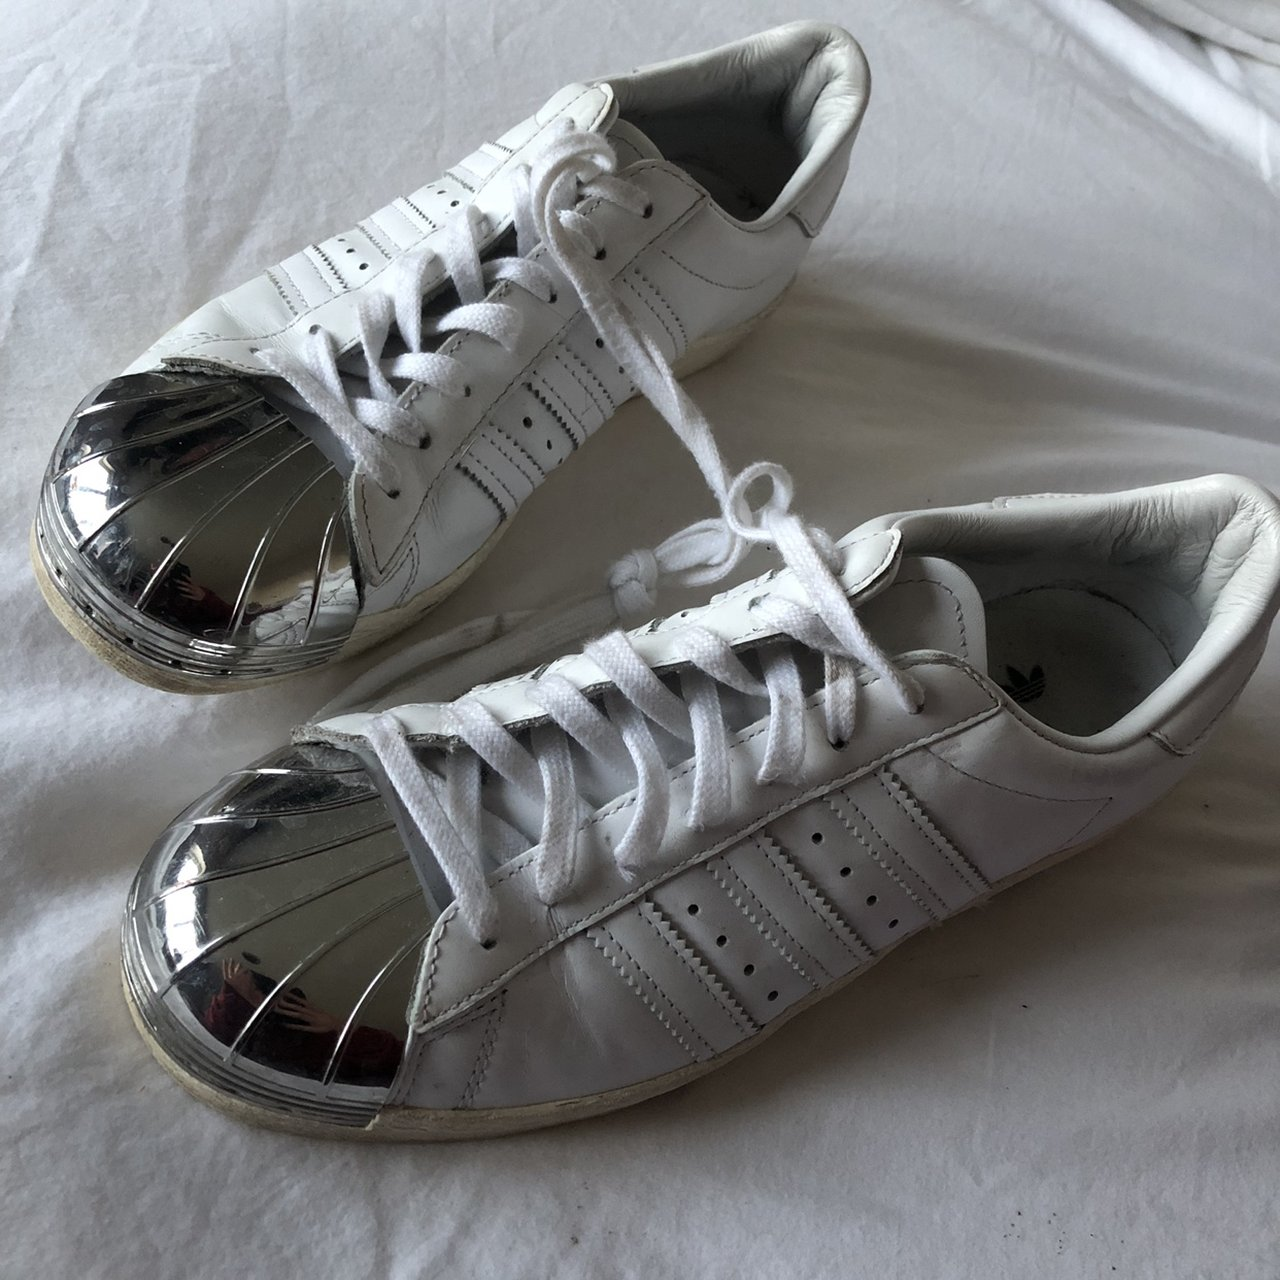 Reduced price need gone  Adidas Superstar 80 s Metal Toe a - Depop e19c57708